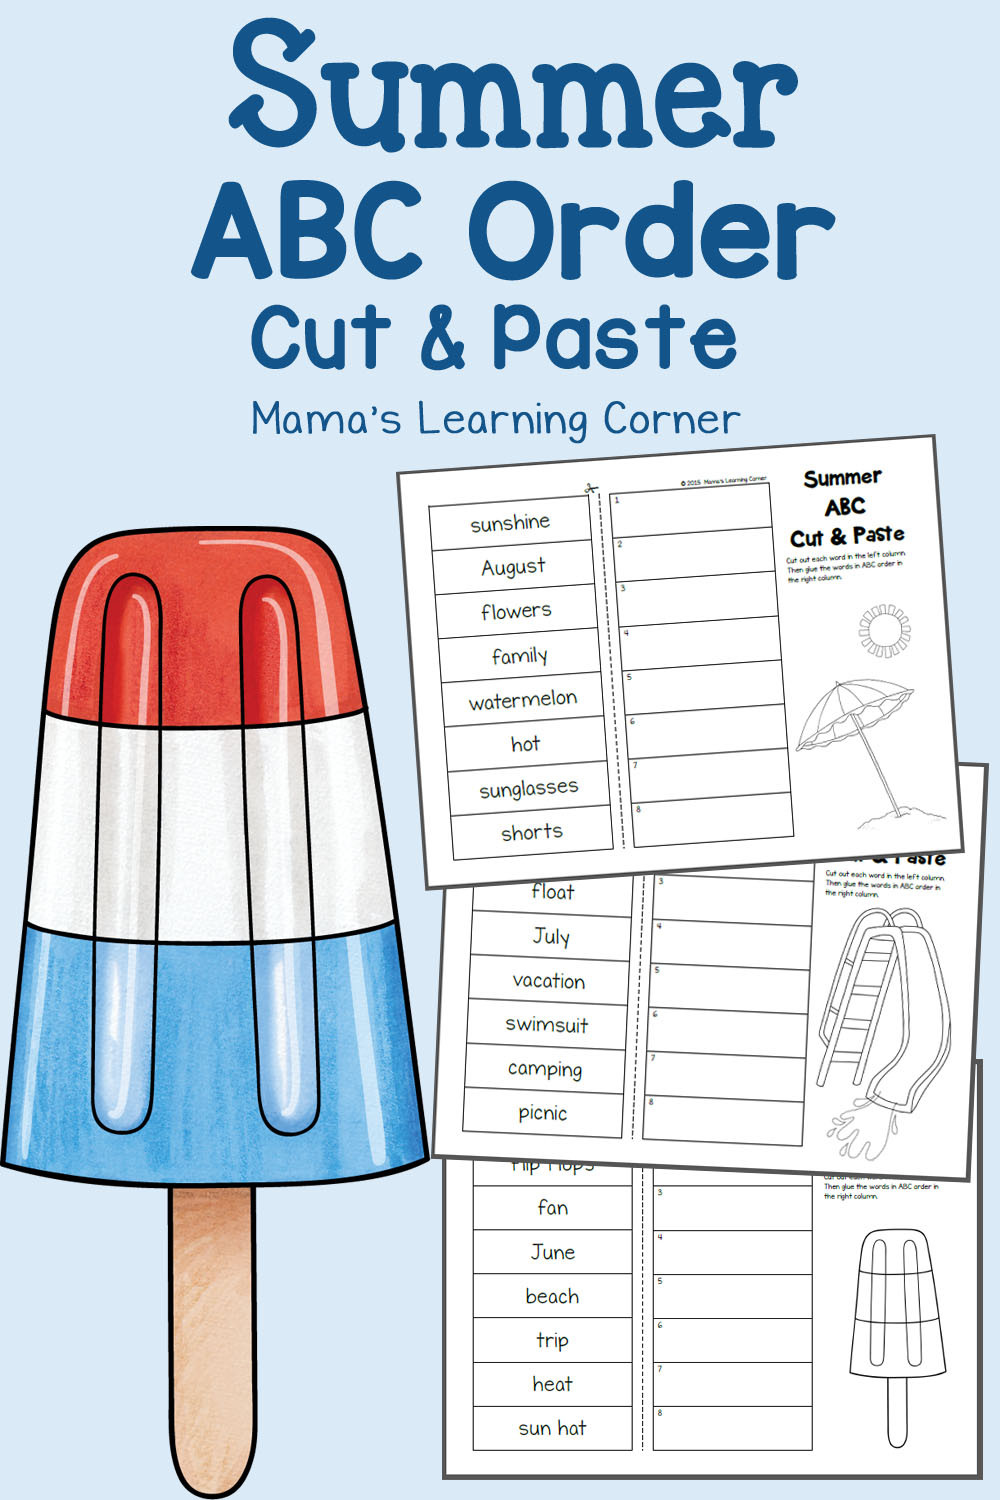 Alphabetical order Worksheets 2nd Grade Summer Cut and Paste Abc order Worksheets Mamas Learning